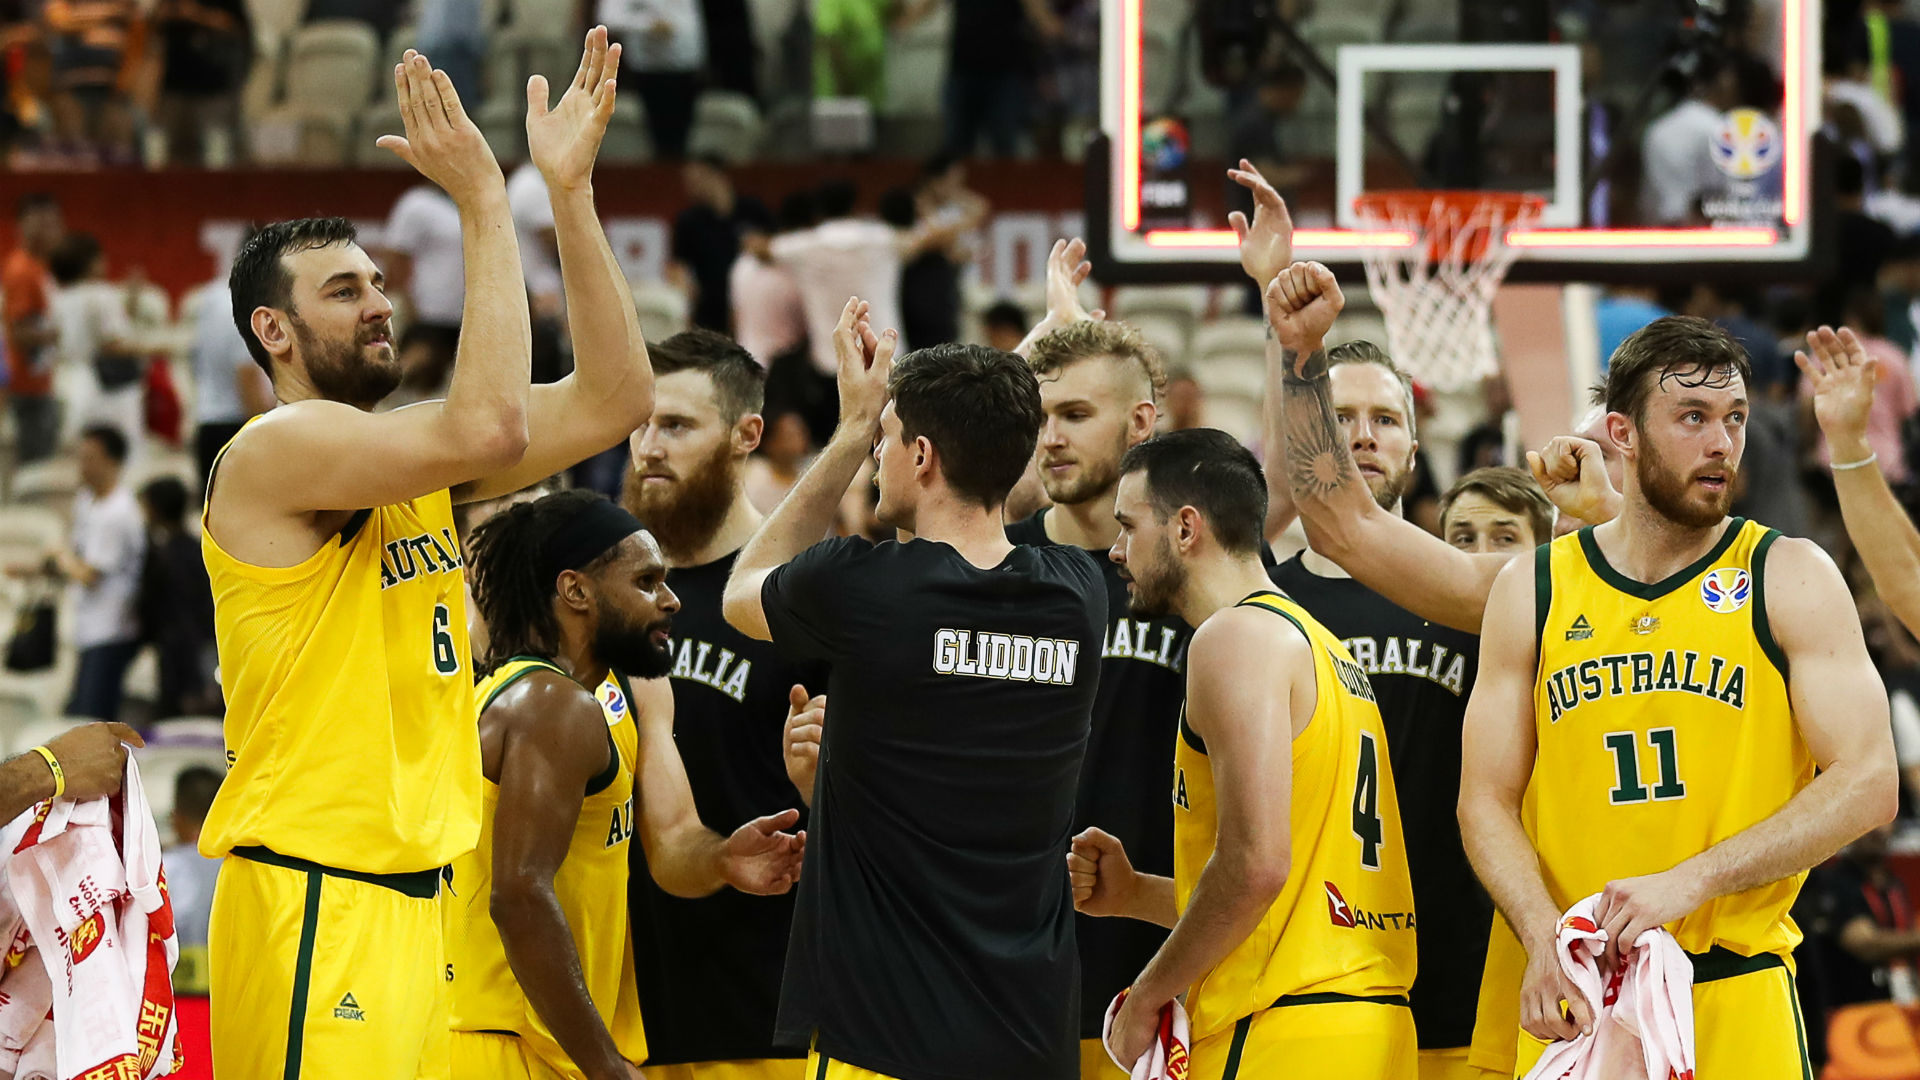 Australia celebrate reaching the FIBA World Cup semi-finals